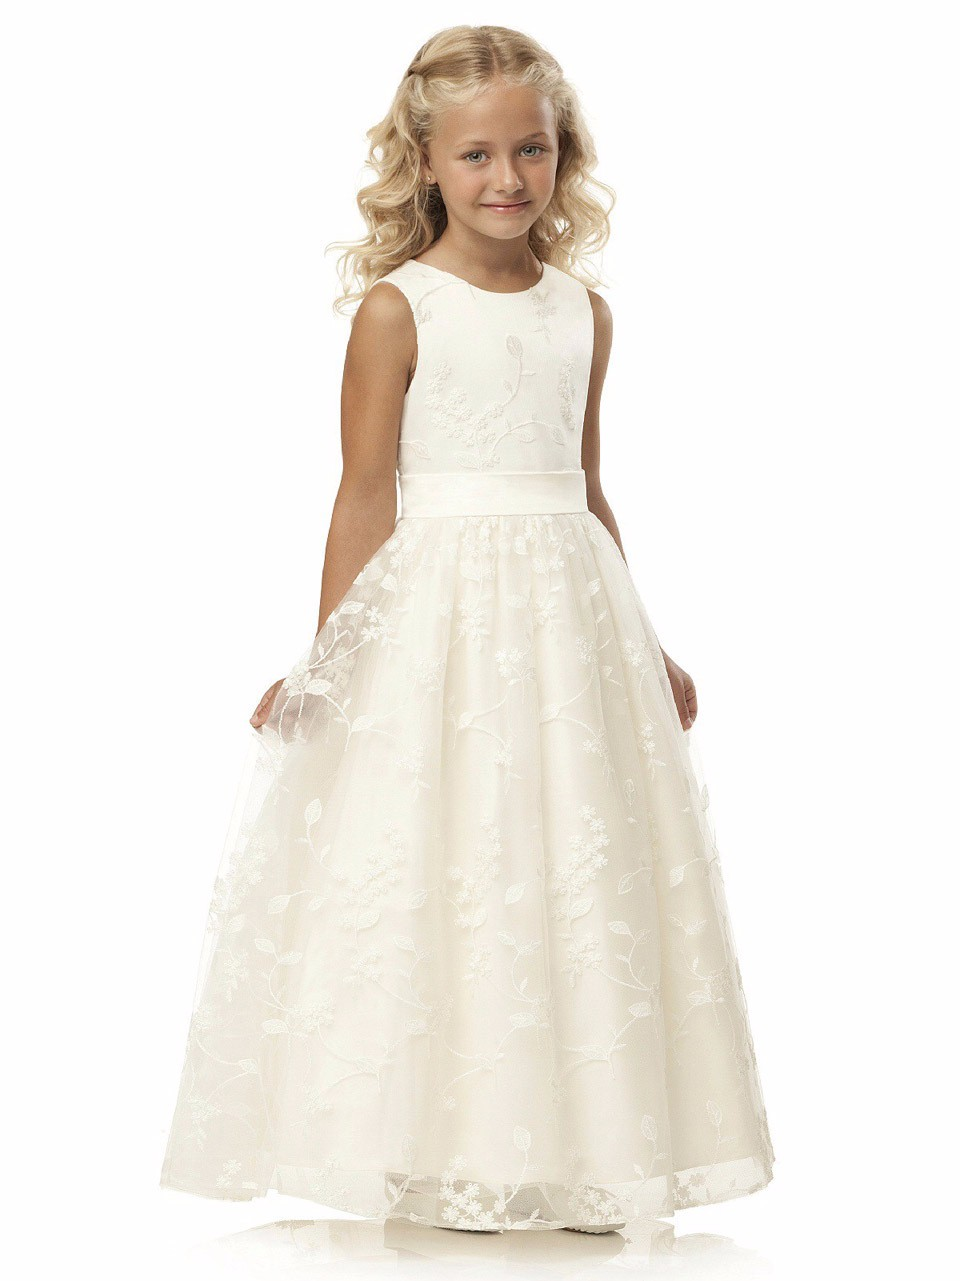 Girl First Birthday Outfit Pinterest: Popular Lace Communion Dress-Buy Cheap Lace Communion